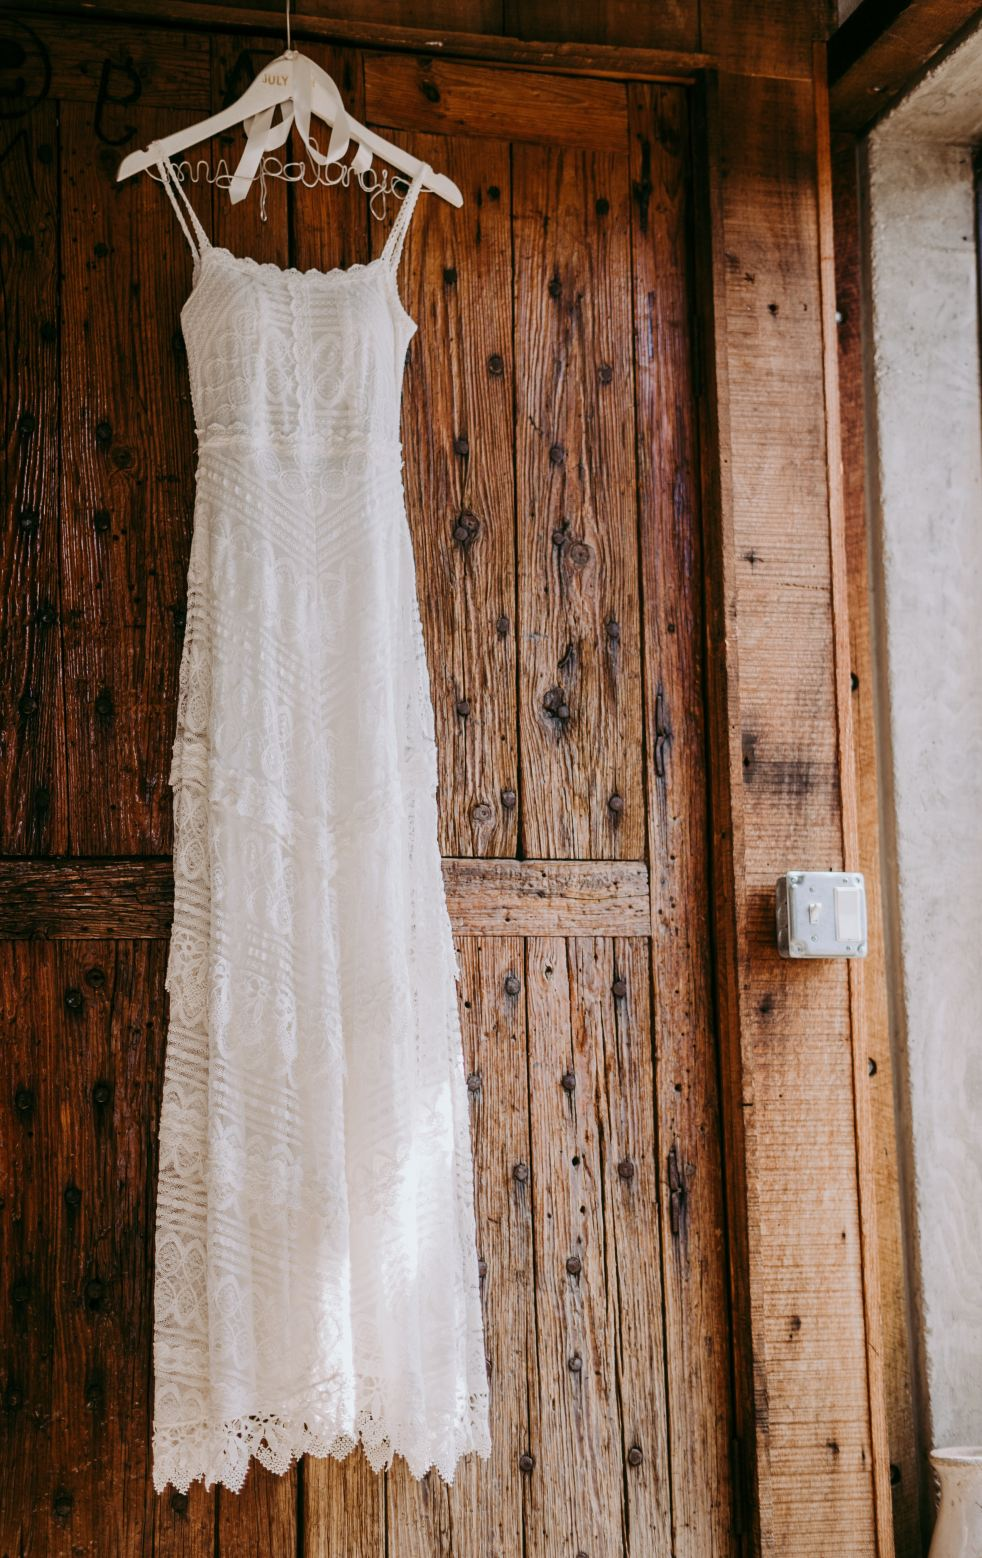 Wedding Dress Hanging Up - Featured Image